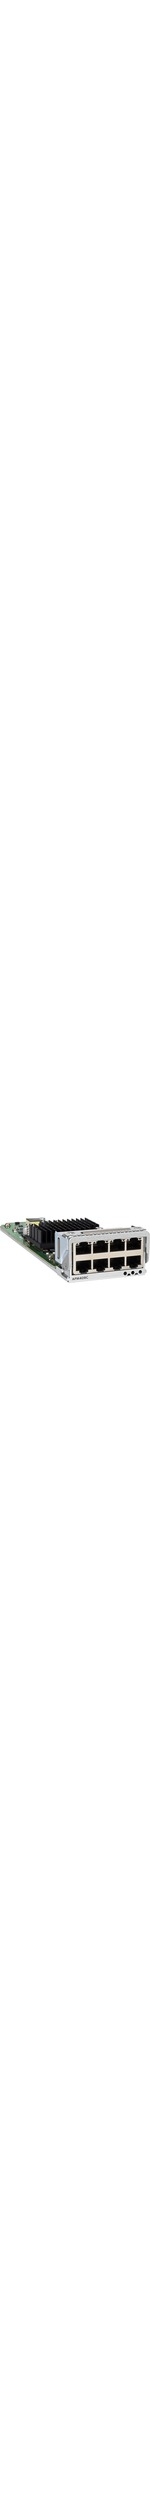 Netgear APM408C Expansion Module - 8 RJ-45 10GBase-T Network LAN - For Data Networking - Twisted Pair10 Gigabit Ethernet - 10GBase-T